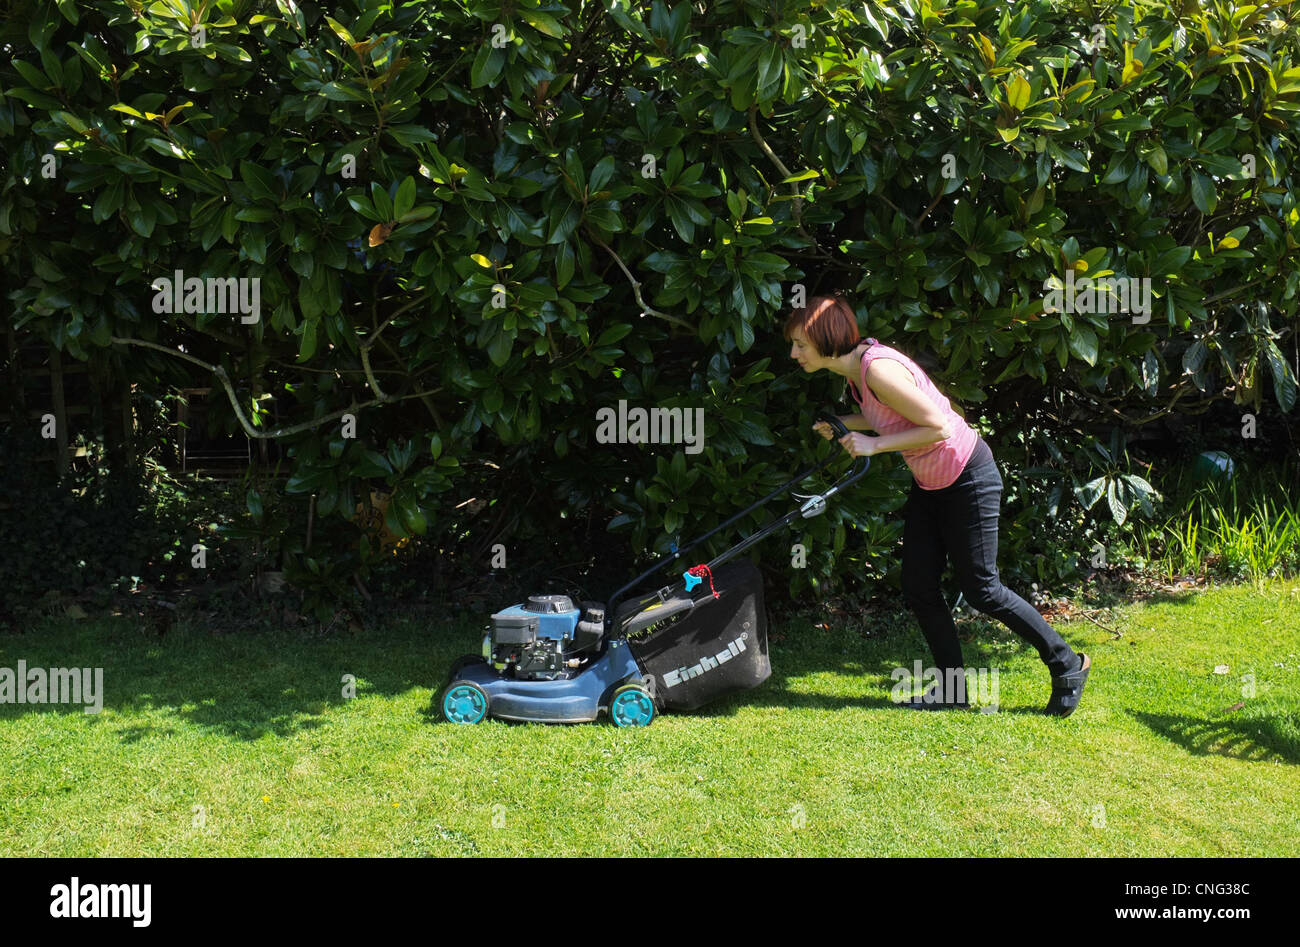 A woman in her mid-forties mowing her front lawn in Cornwall, UK - Stock Image